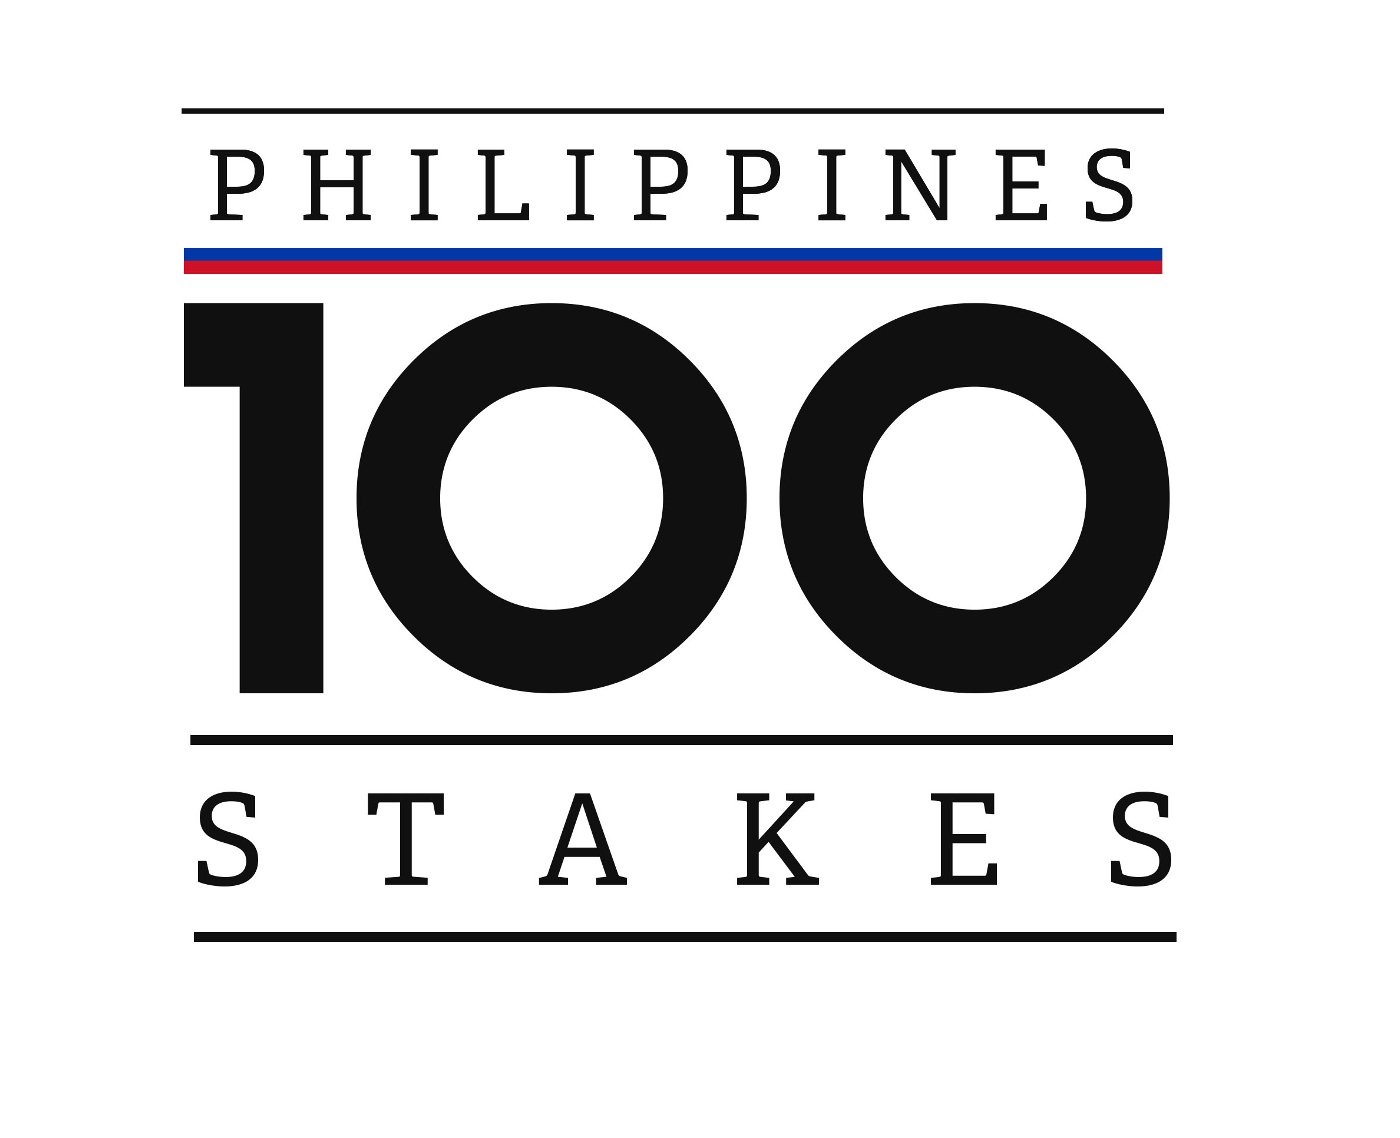 Mormon-Newsroom-Philippines_100-Stakes-Logo - This Week in Mormons